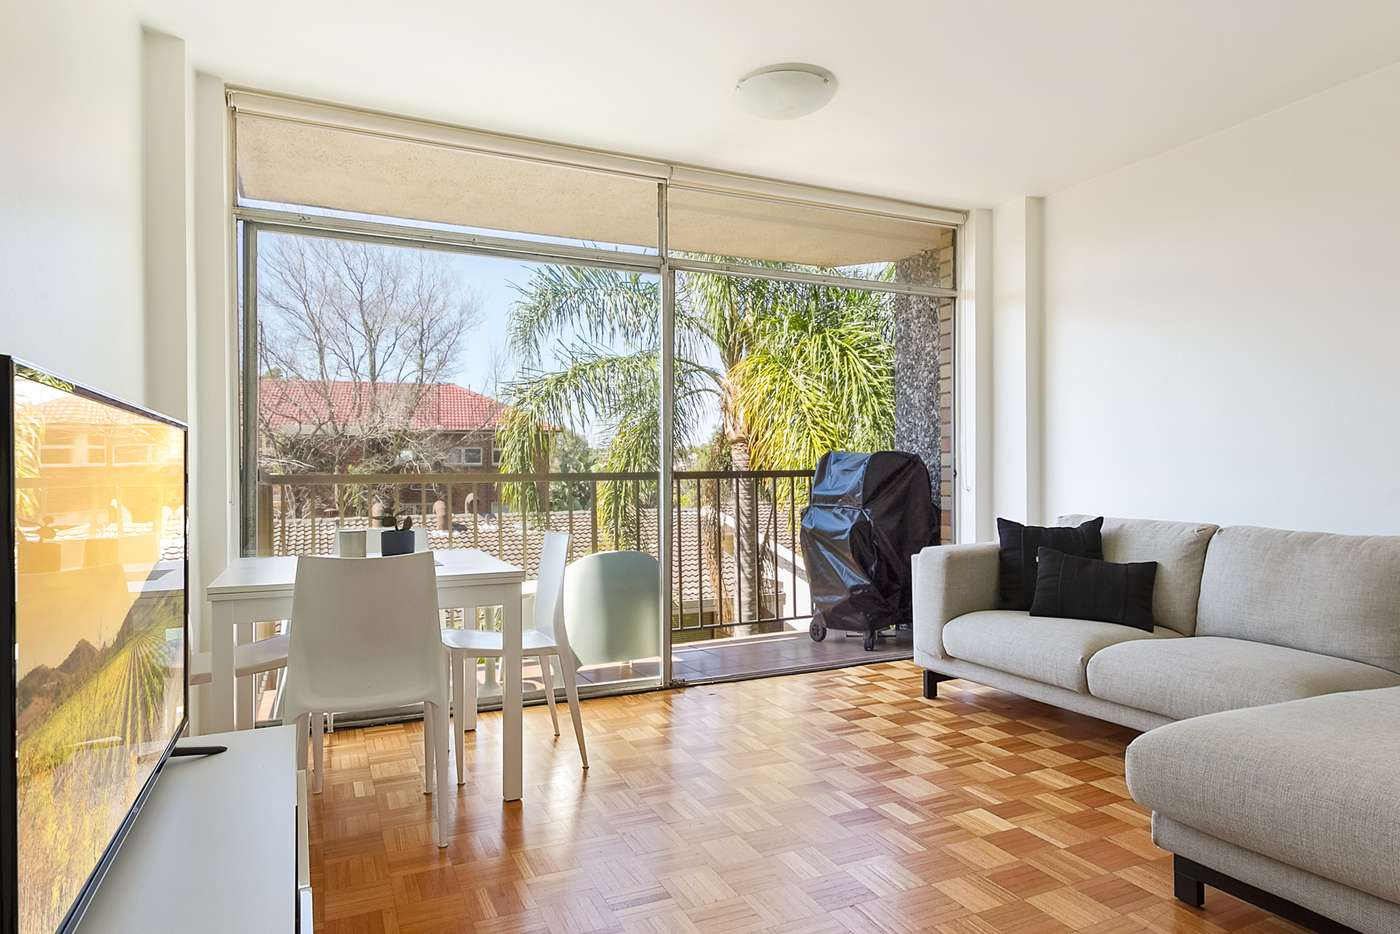 Main view of Homely apartment listing, 34/372 Edgecliff Road, Woollahra NSW 2025